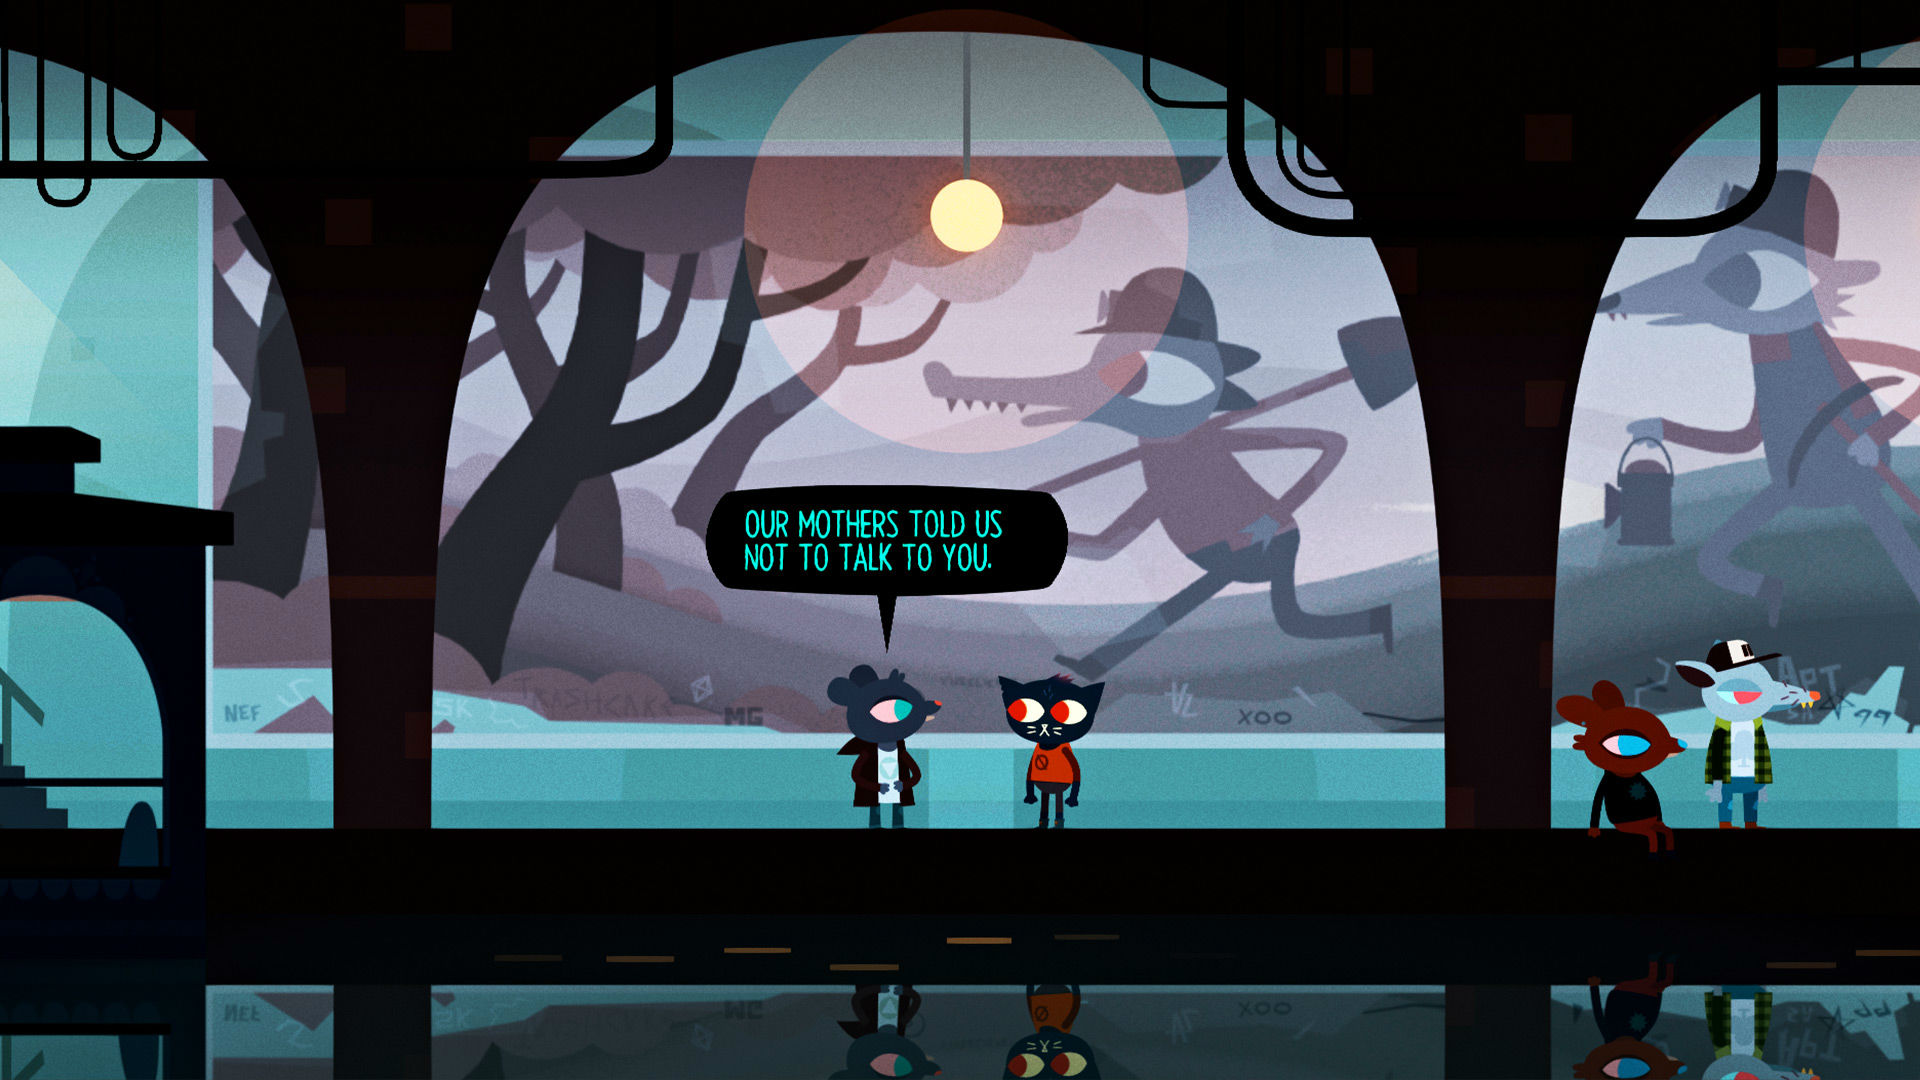 Game Developers Behind Dead Cells, Night in the Woods, and More Share Why the Co-Op Studio Model Works